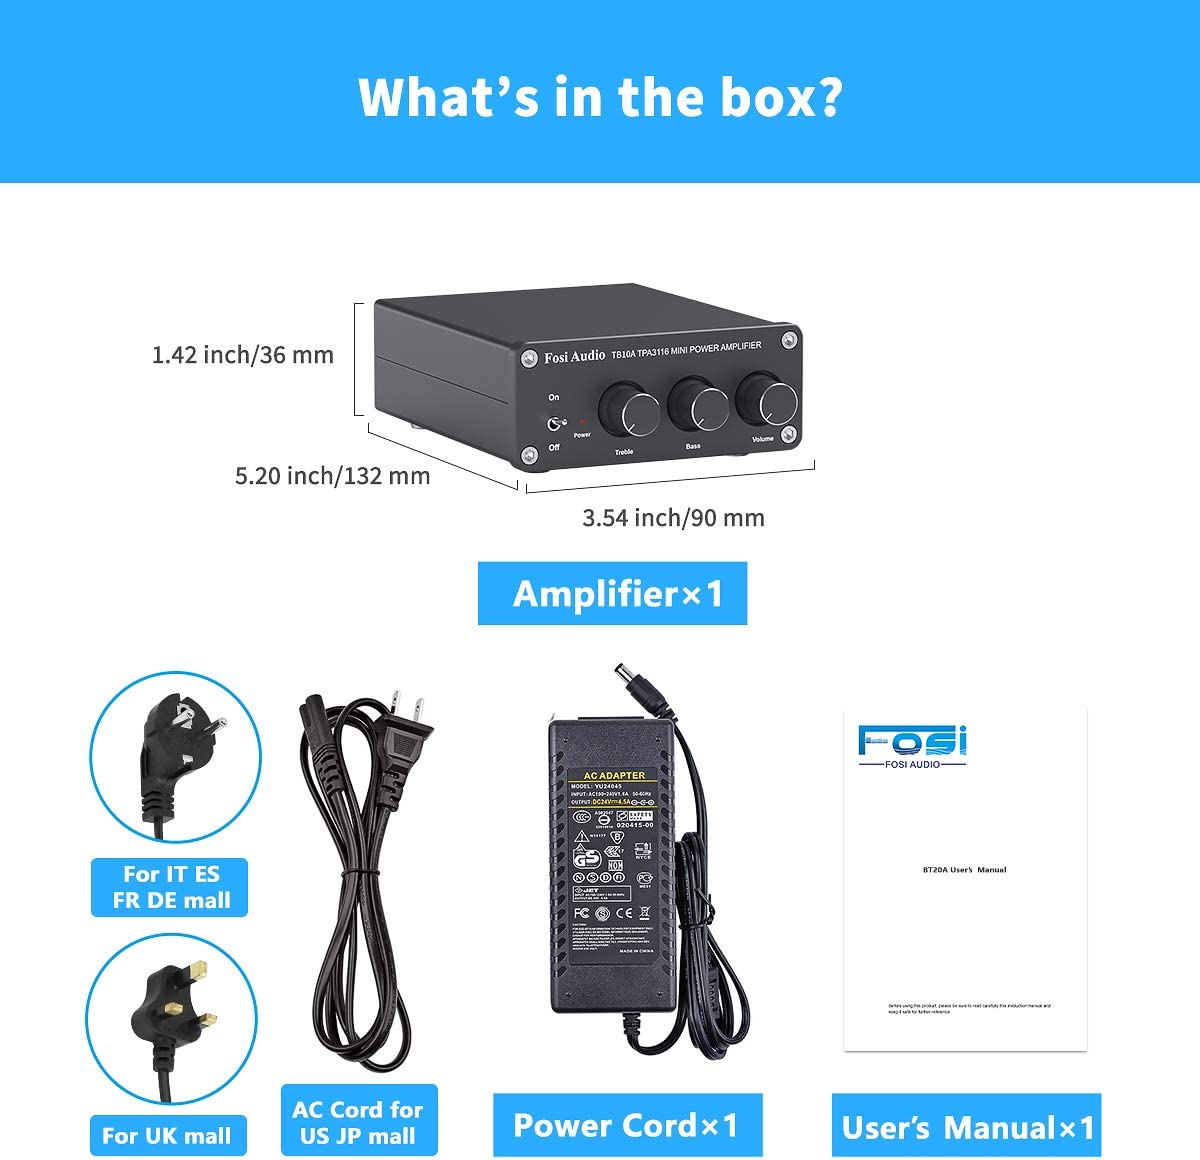 2 Channel Stereo Audio Amplifier Receiver Mini Hi Fi Class D Integrated Amp 2 0ch For Home Speakers 100w X 2 With Bass And Treble Control Tpa3116 Tb10a With Power Supply Mp3